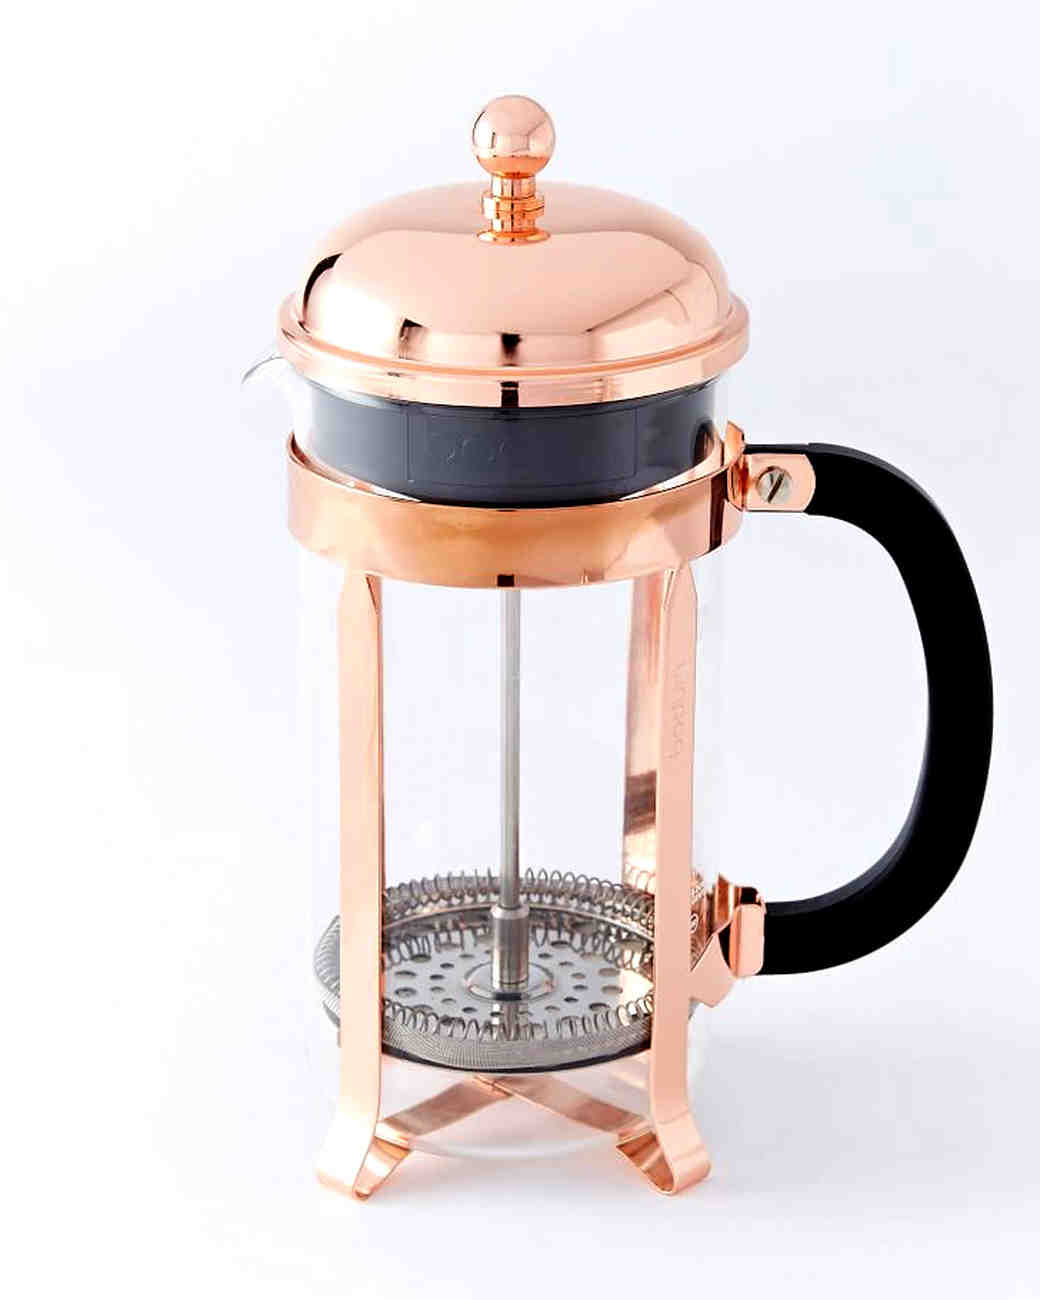 blueprint-team-cleaning-registry-bodum-copper-french-press-1015.jpg